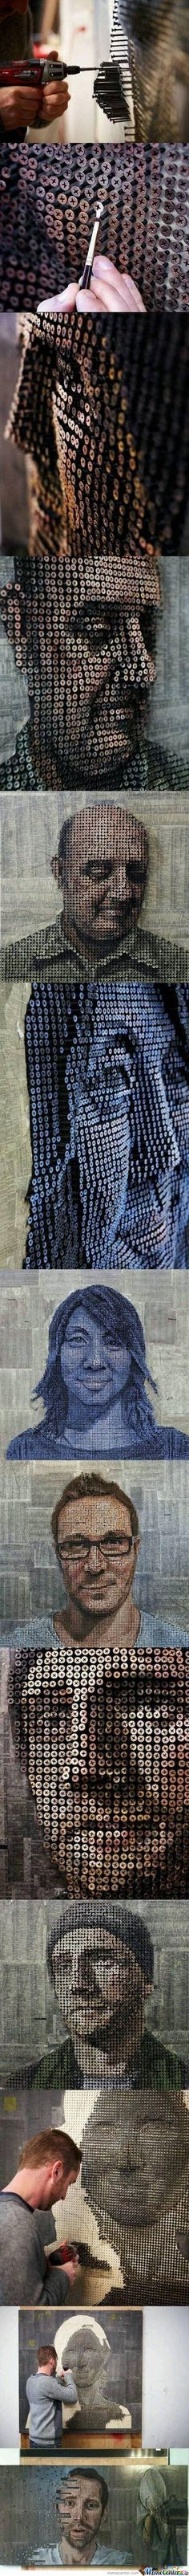 Amazing Screw Art